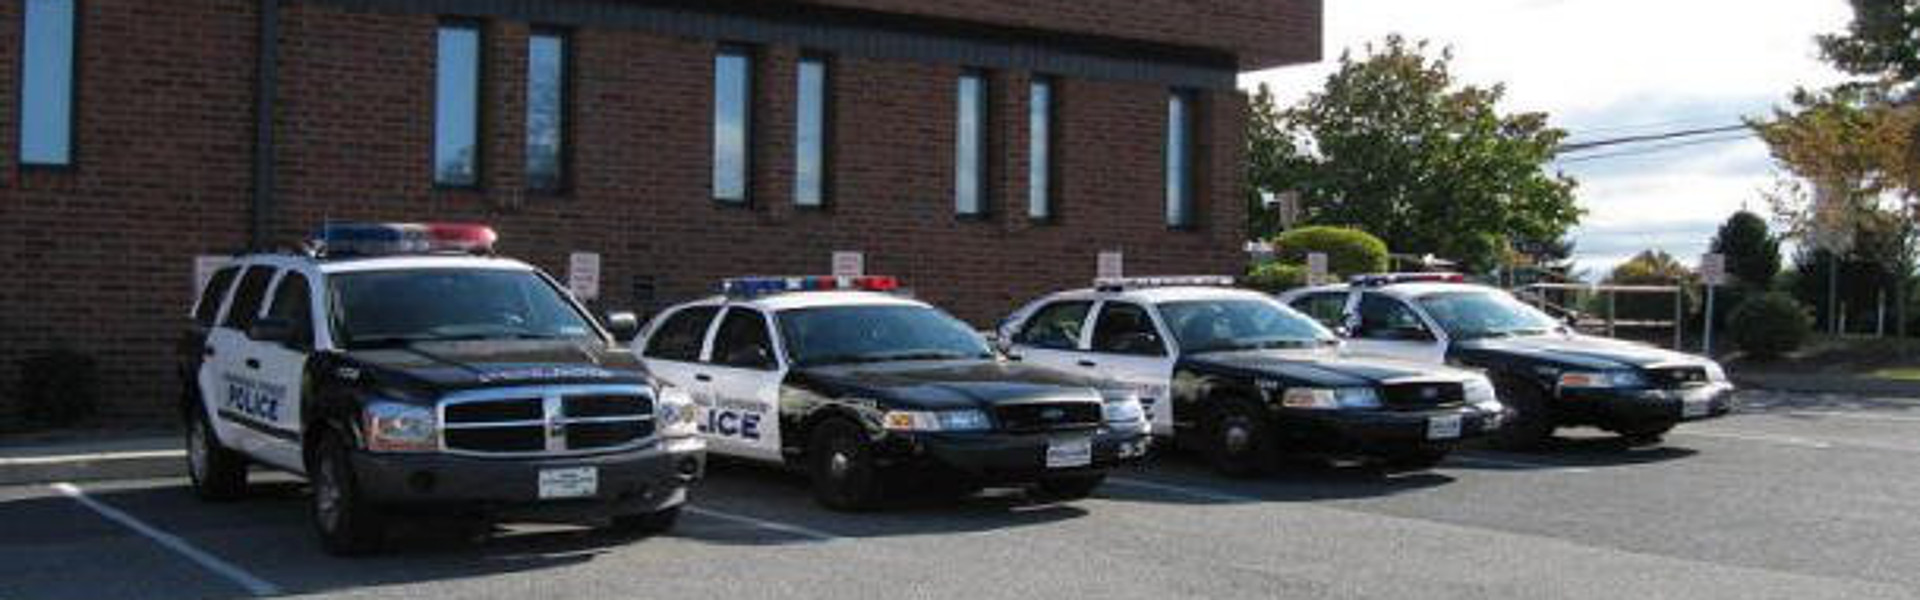 Susquehanna Township Police: student reports suspicious behavior